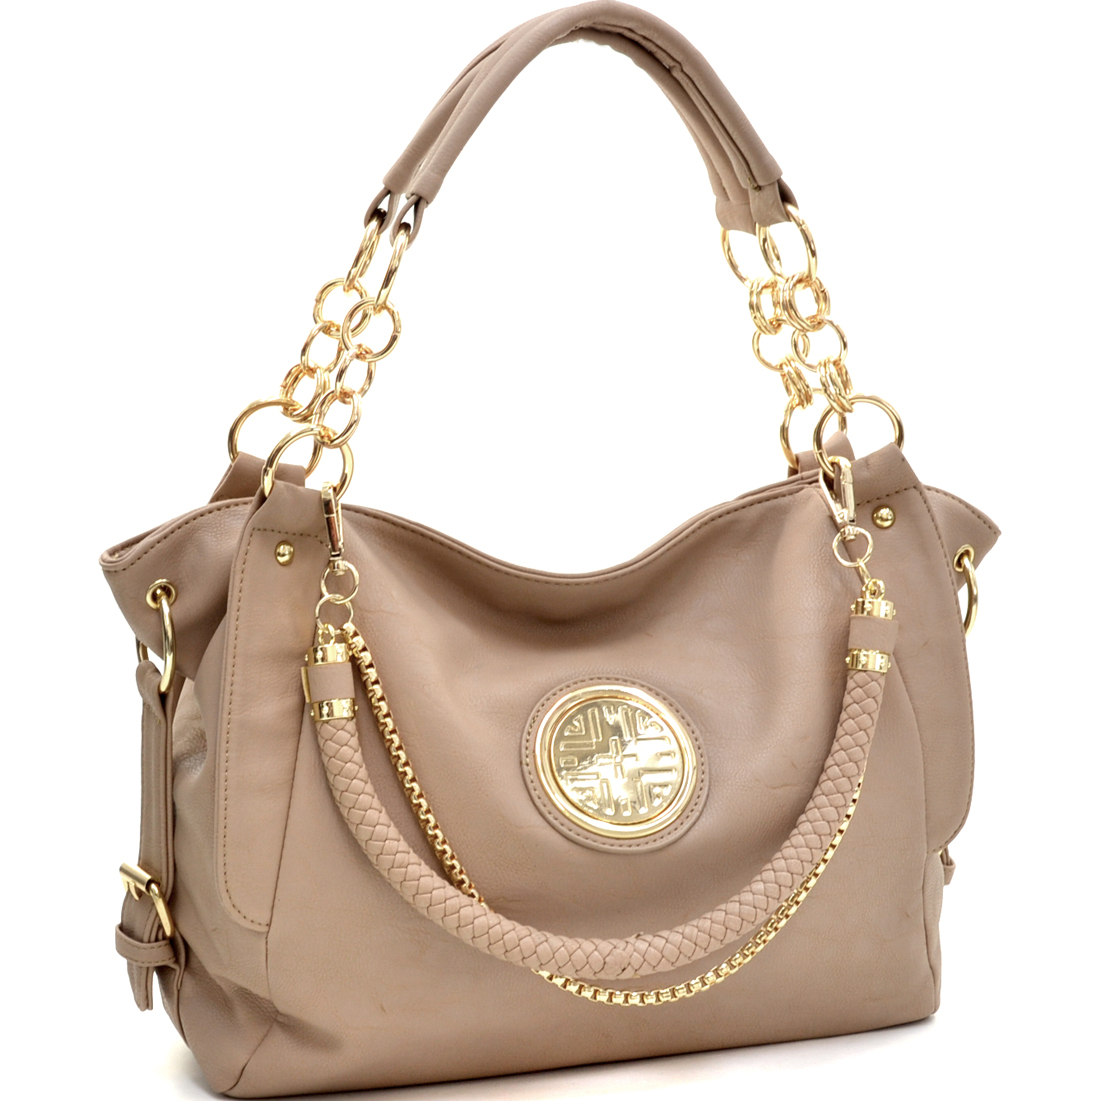 Side Buckle Tote with Gold Tone Rings and Emblem